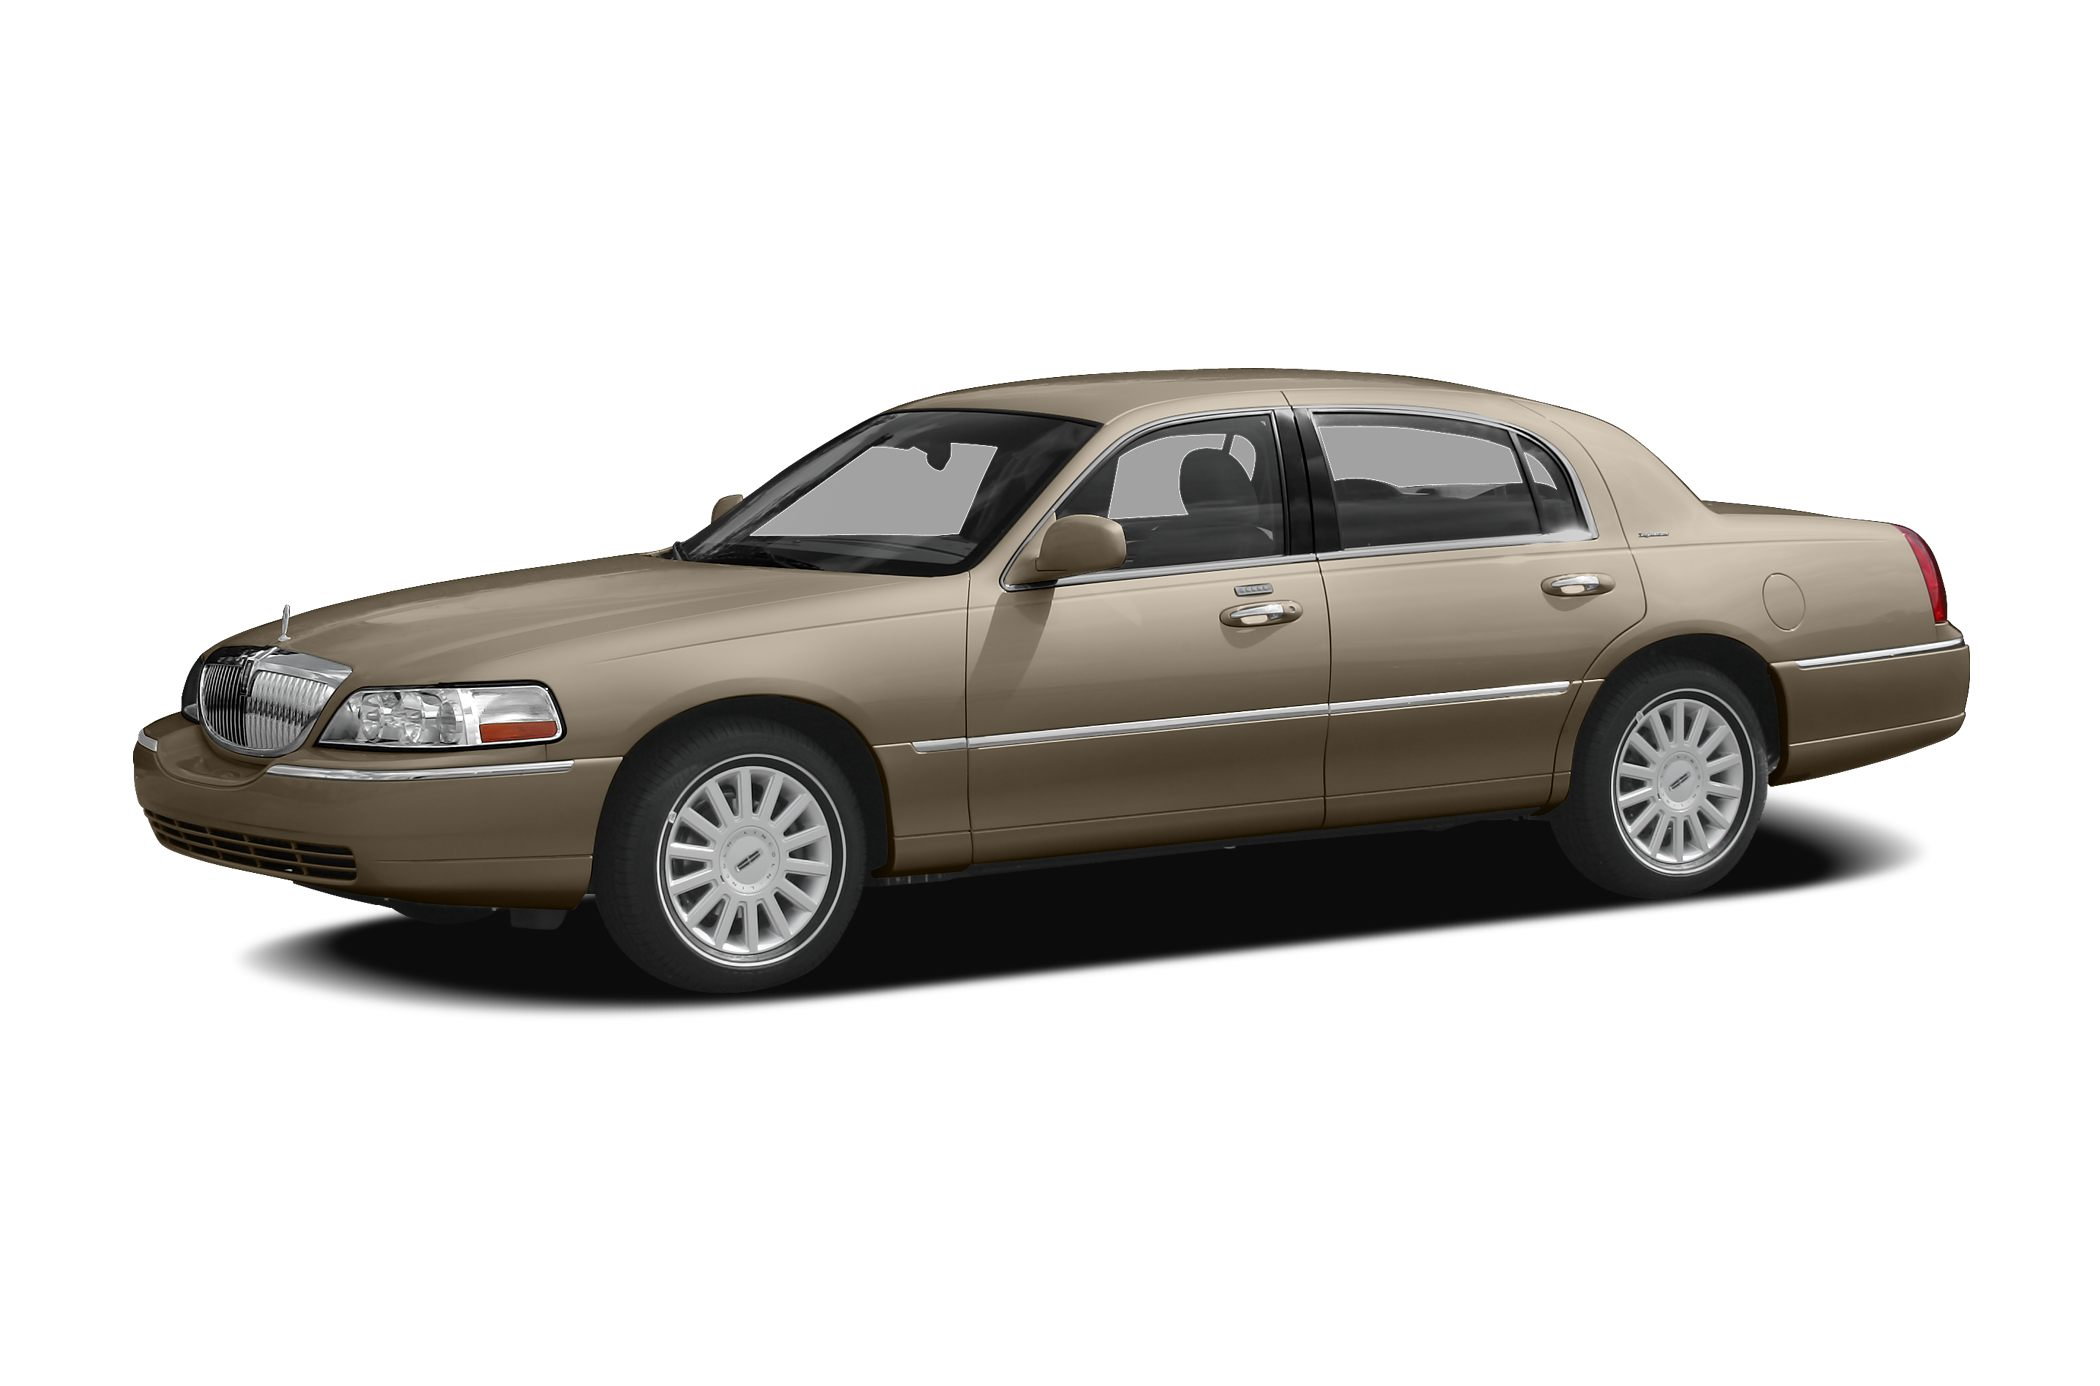 2007 Lincoln Town Car Information